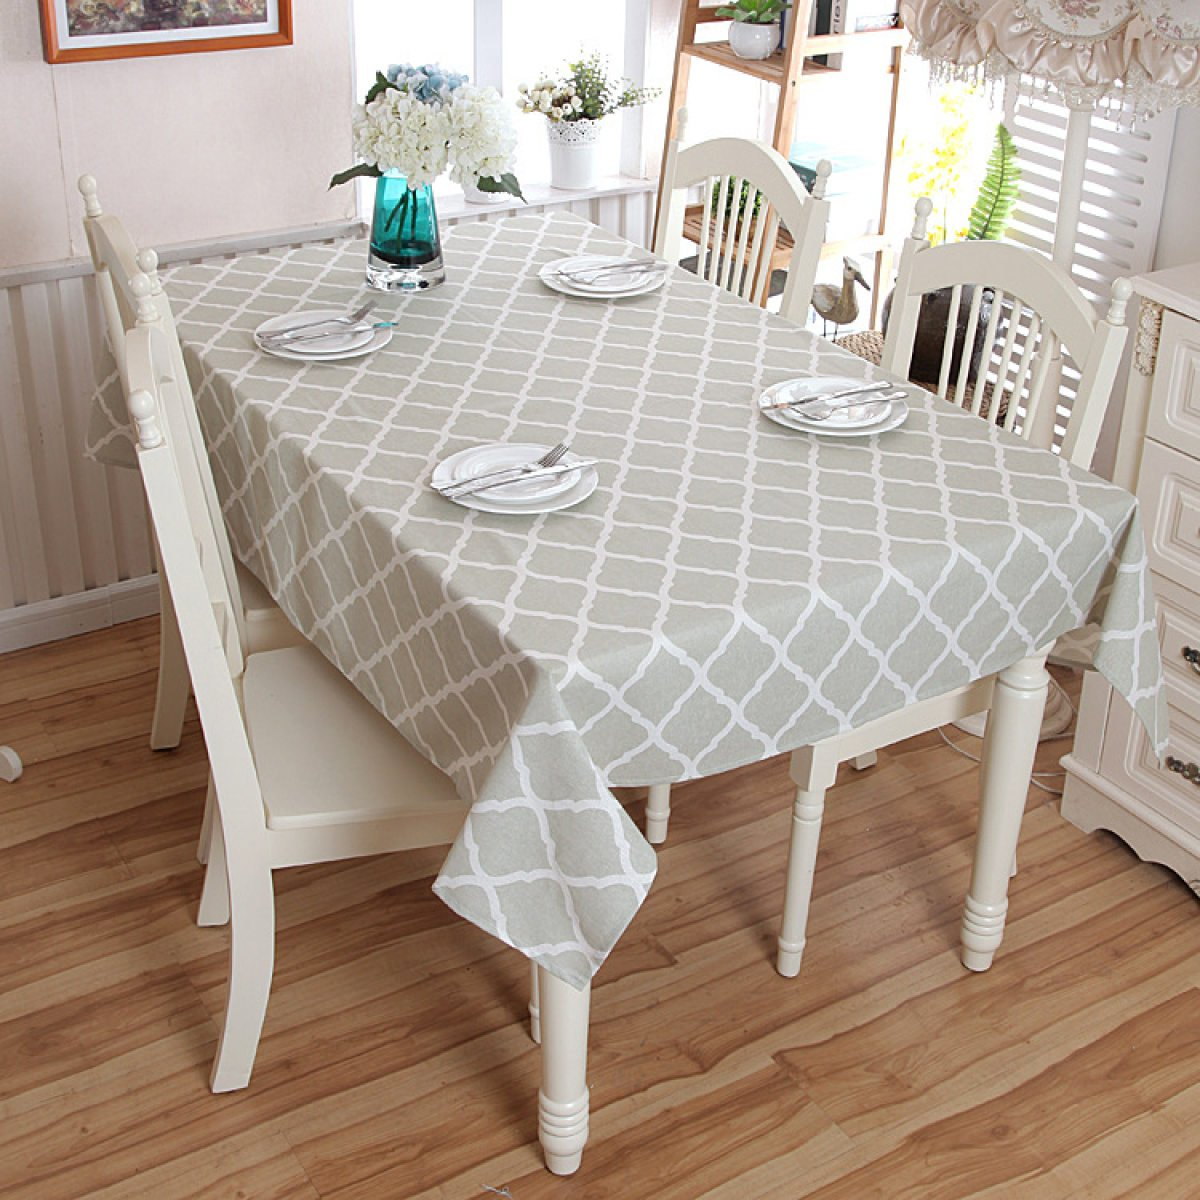 AISHNI Tablecloth Cotton Modern Simple Geometrical Rhombus Grey Lace Coffee Table Table Cloth Table Cloth,A-90*90cm